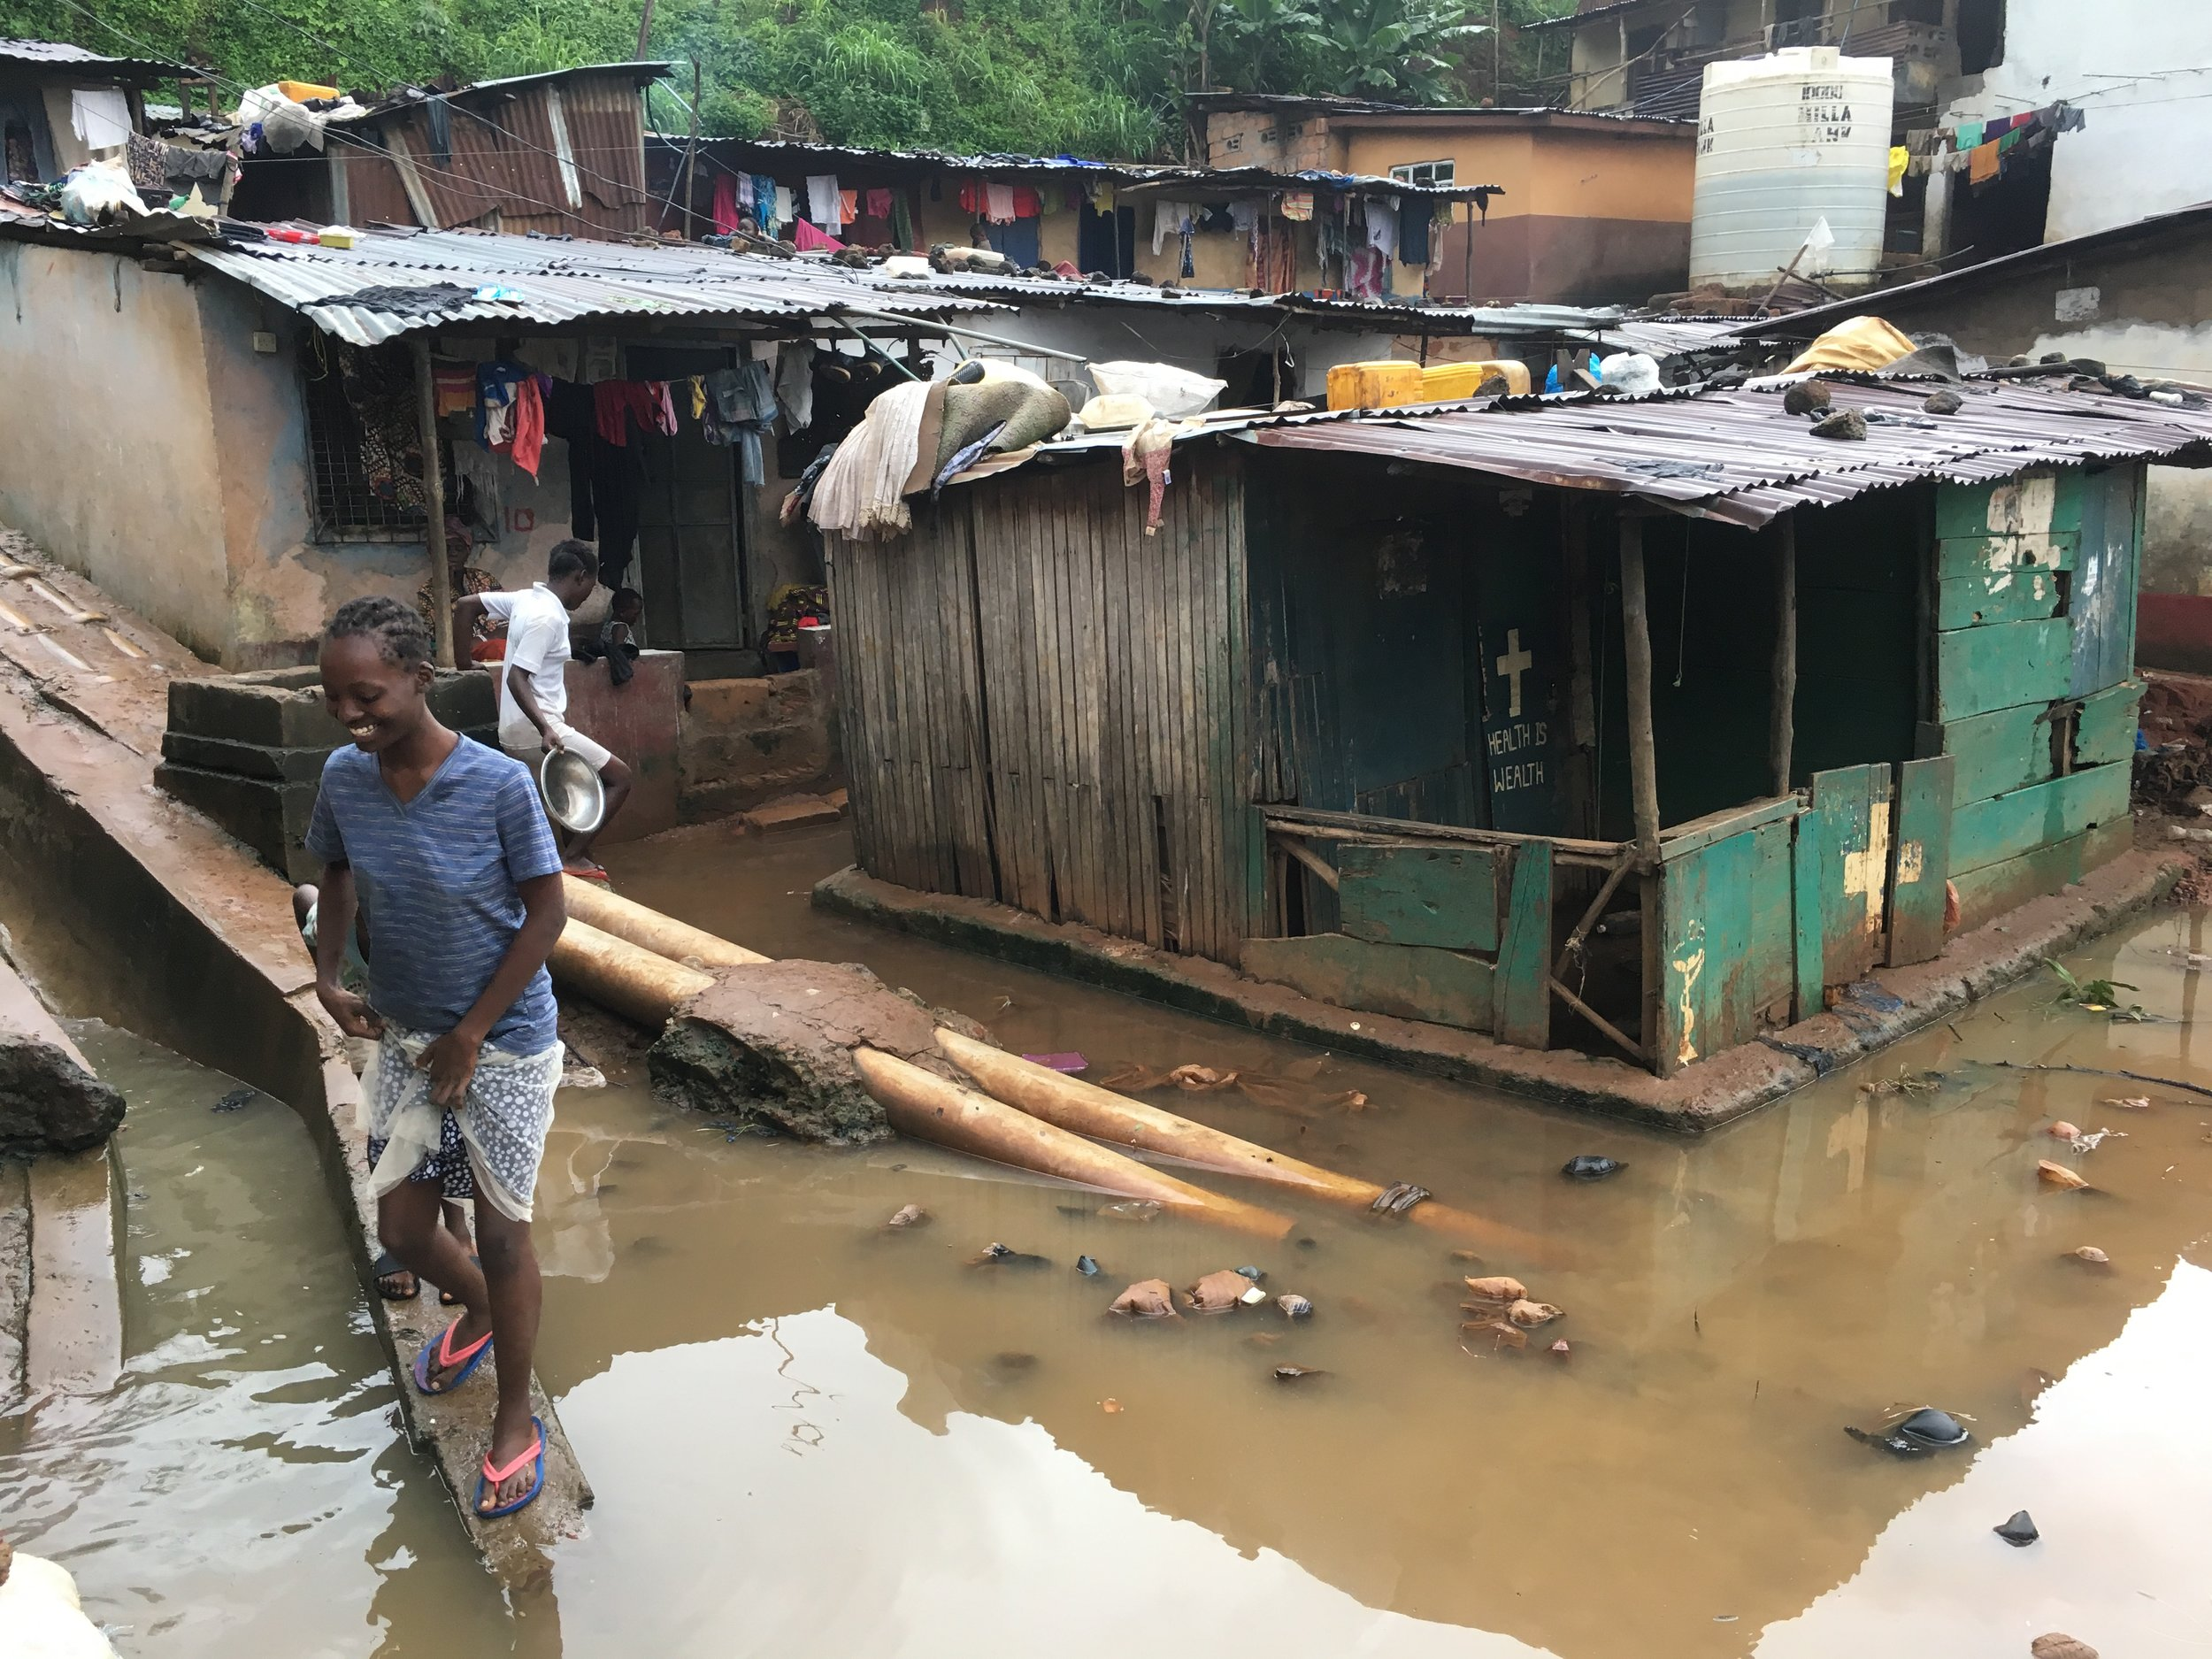 Water polluted with dead animals, diapers, and flooded toilets increases the risk of cholera and other water born diseases